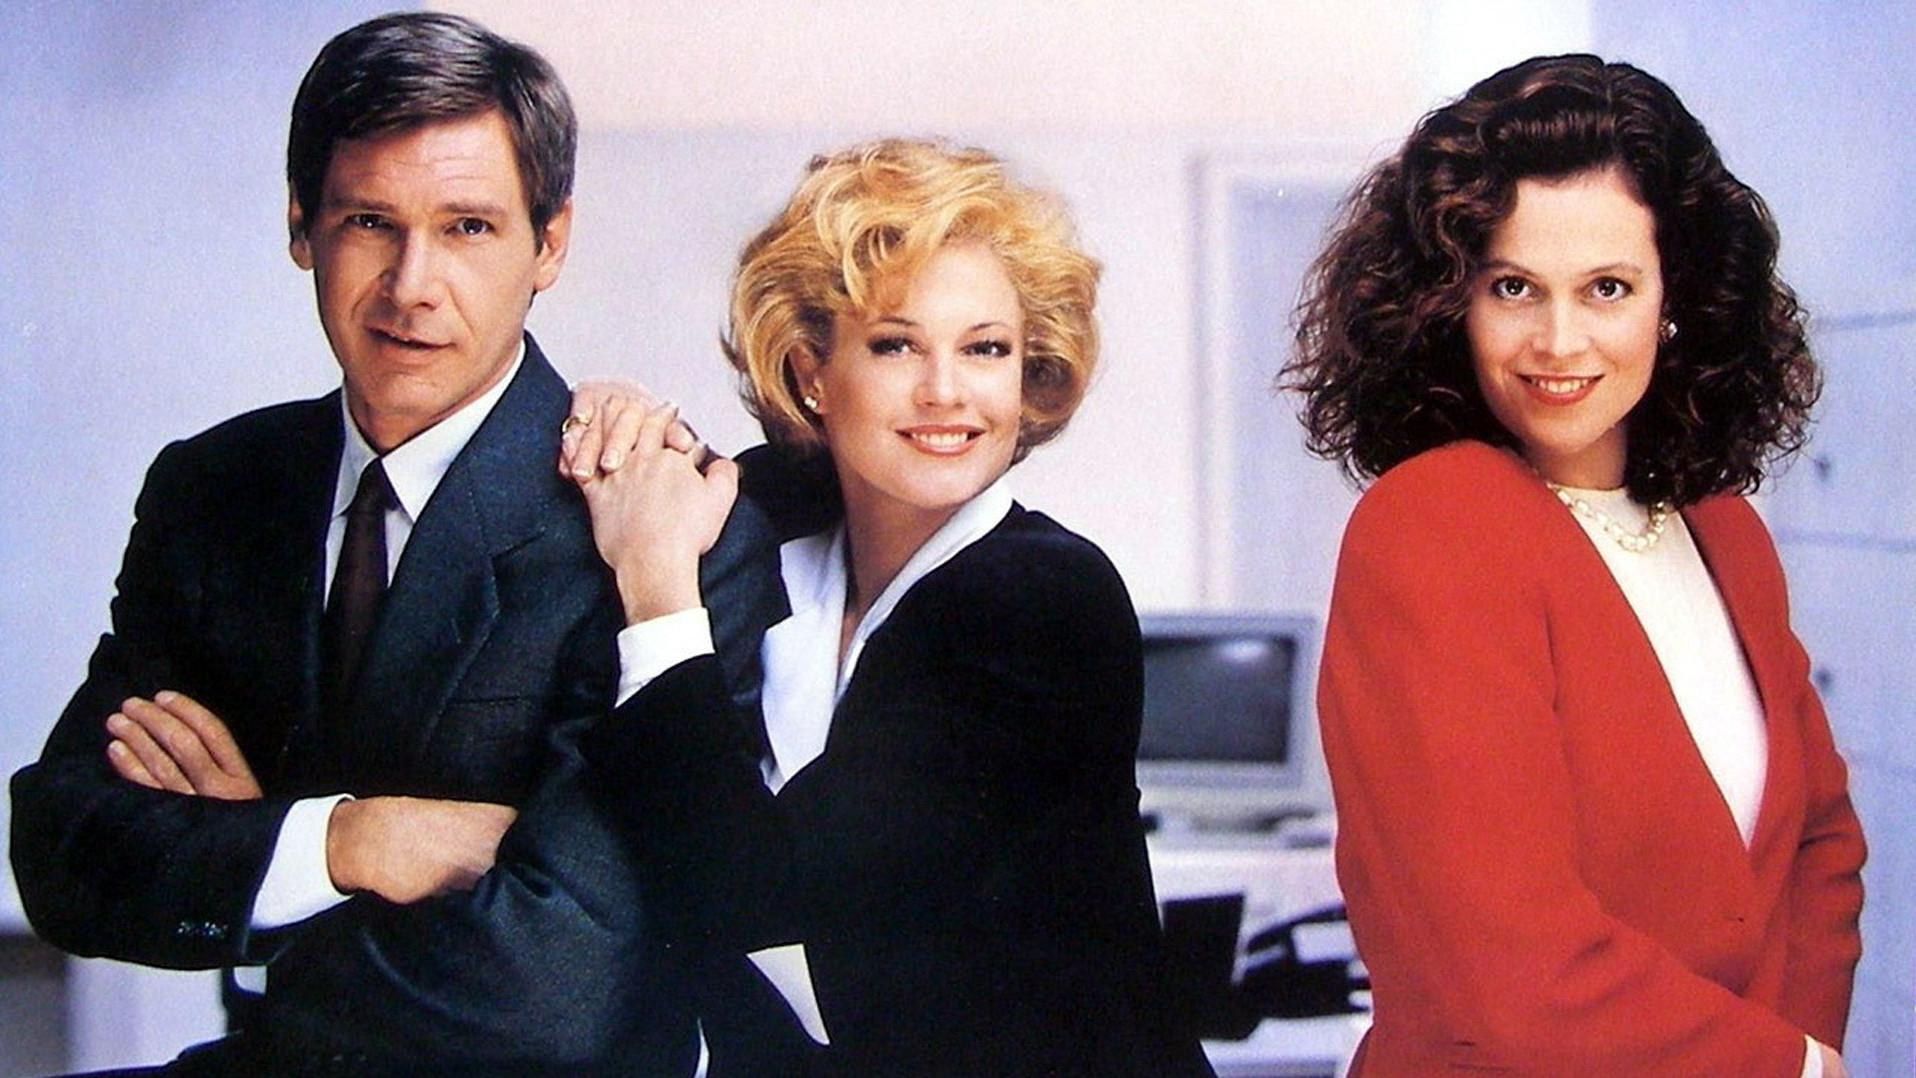 the look of power how women have dressed for success news a publicity still from the movie working girl which prominently featured the beloved power suit